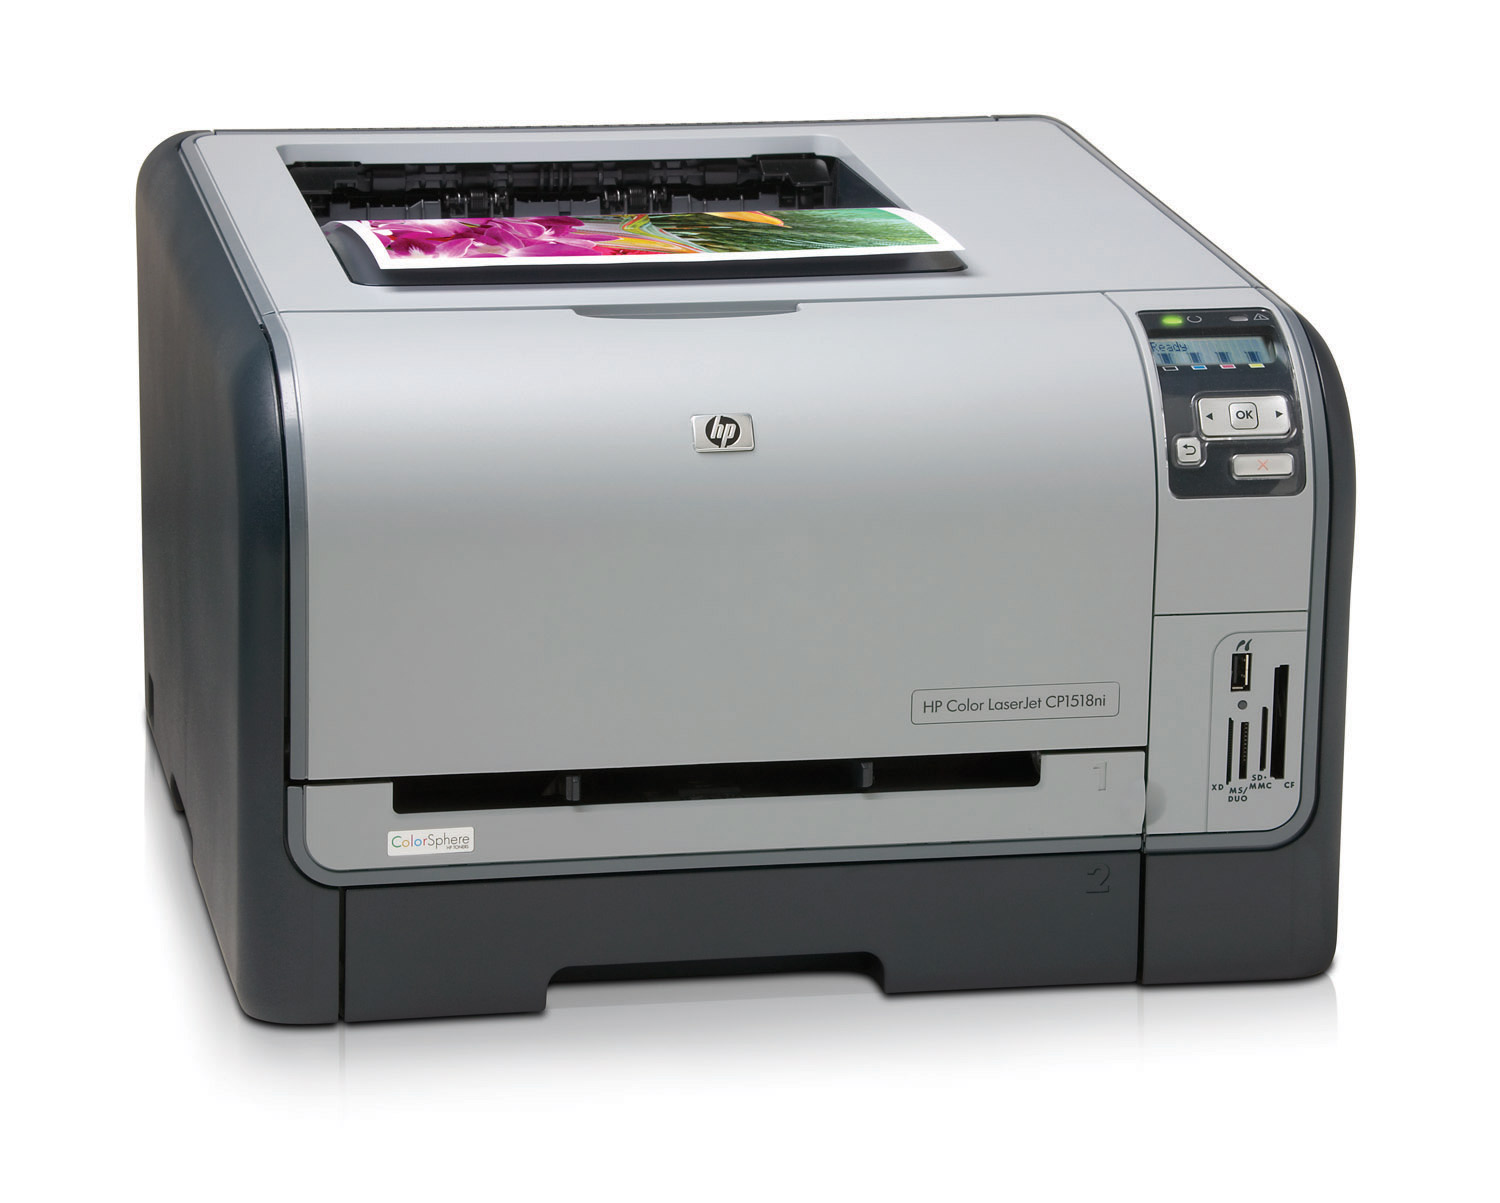 HP Color LaserJet CP1815ni Printer